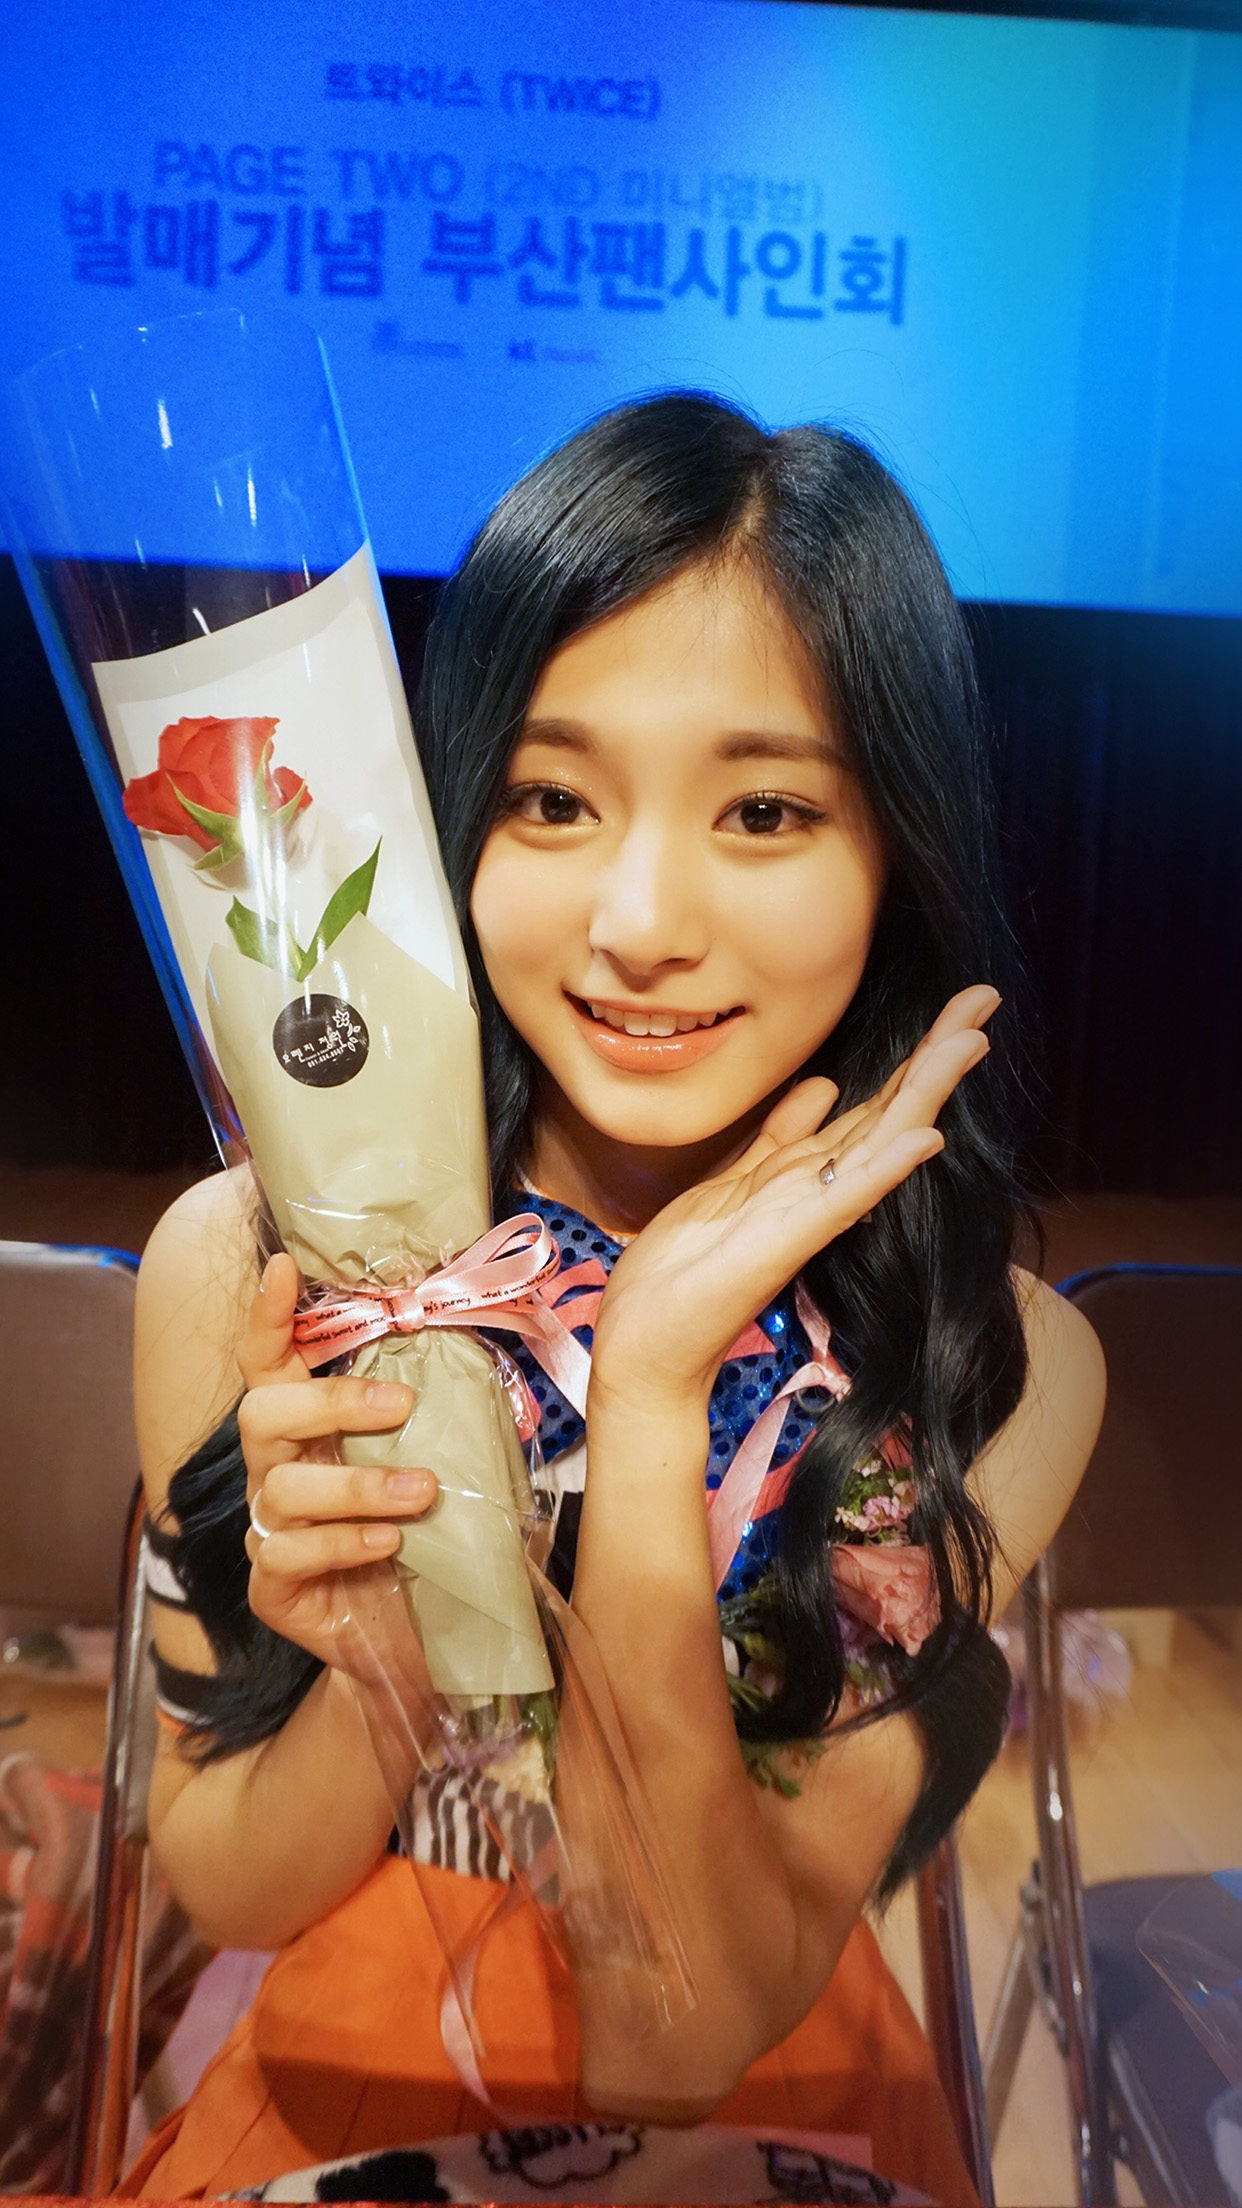 Twice Kpop Girl Flower Tzuyu Fan Android Wallpaper Android Hd